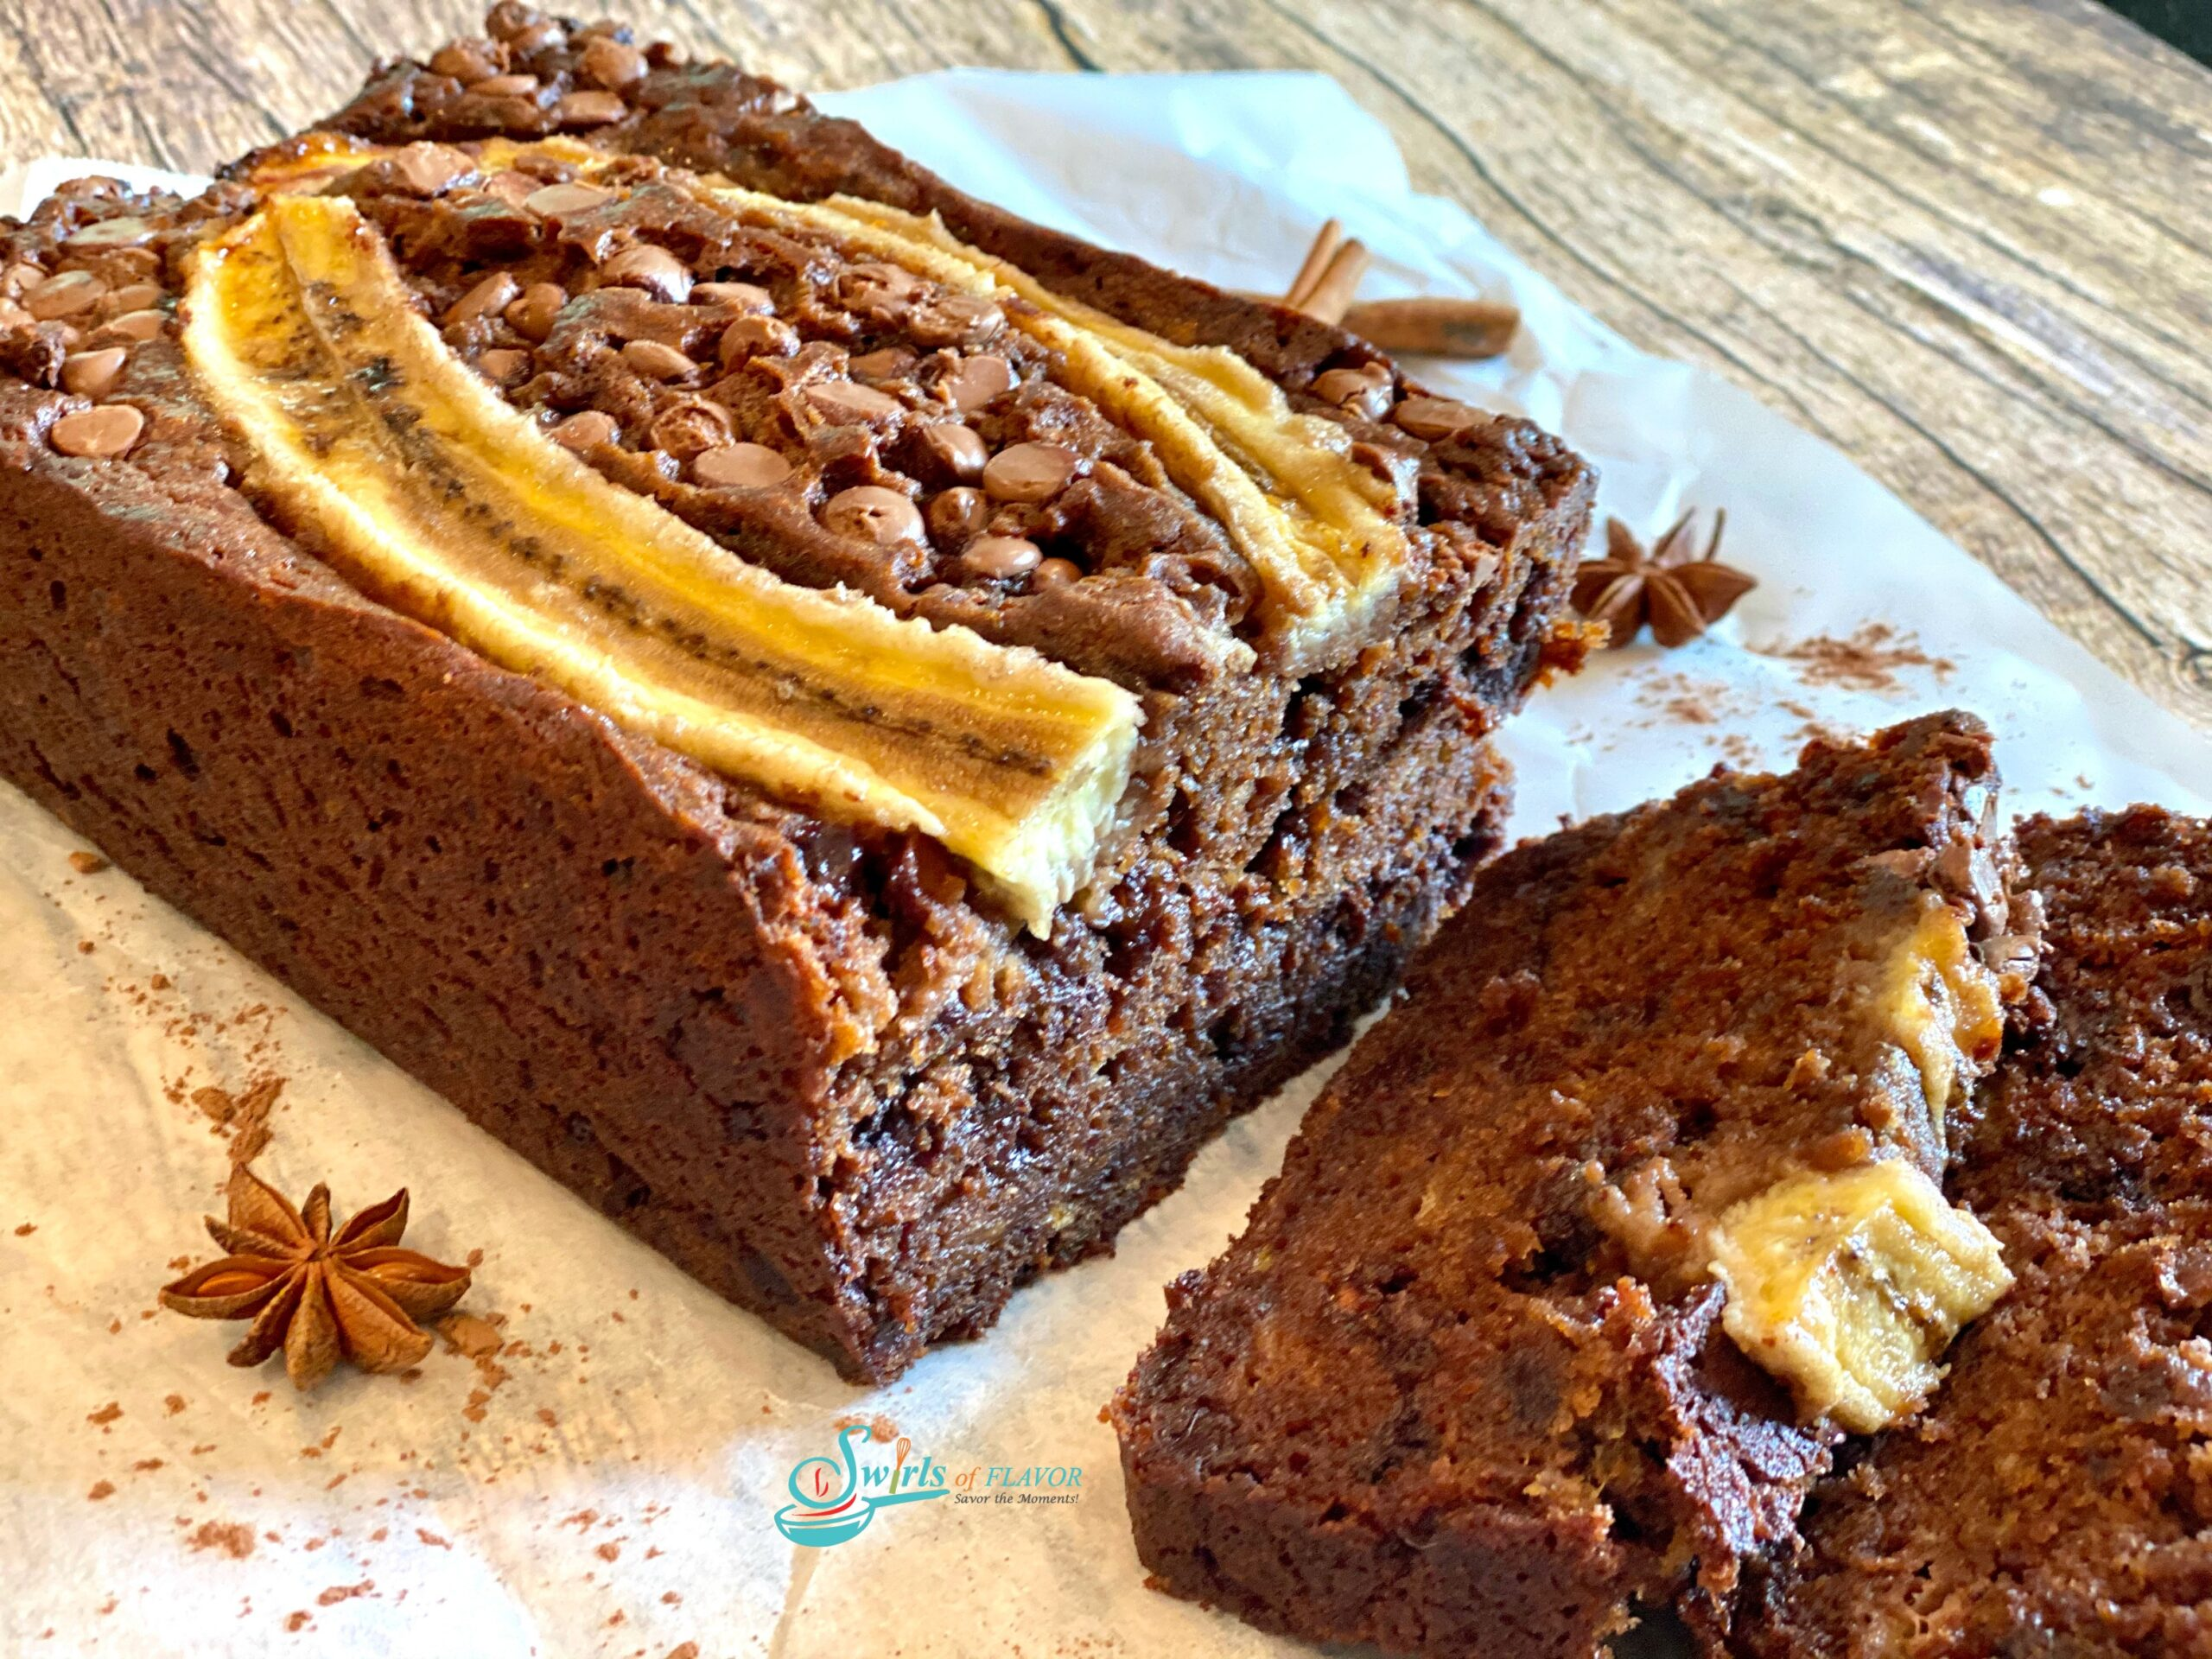 Chocolate Chip Banana bread with slices